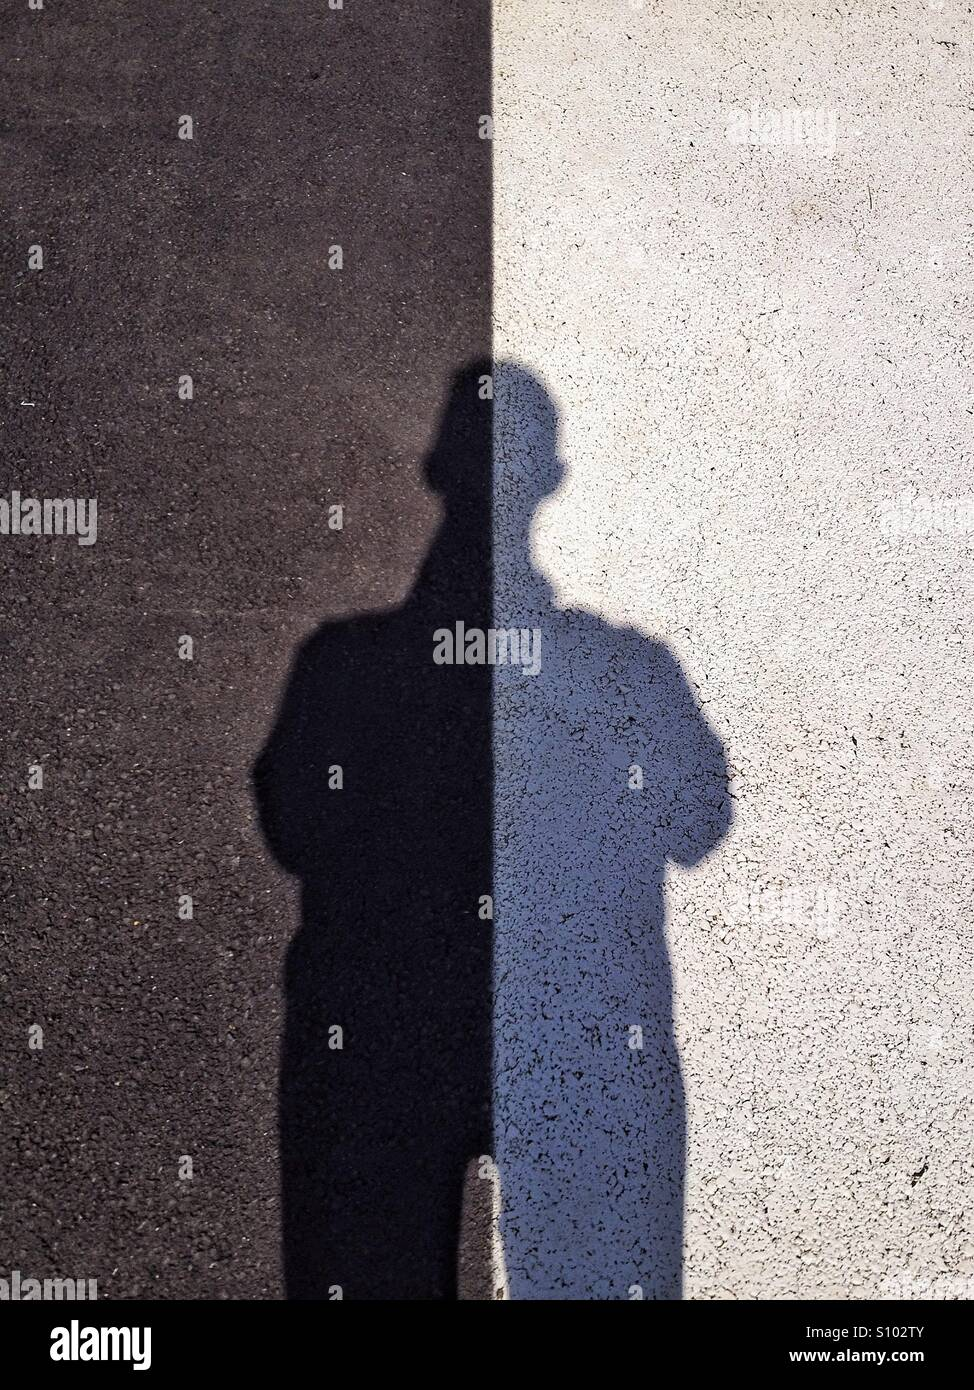 Man's shadow on two tone surface - Stock Image